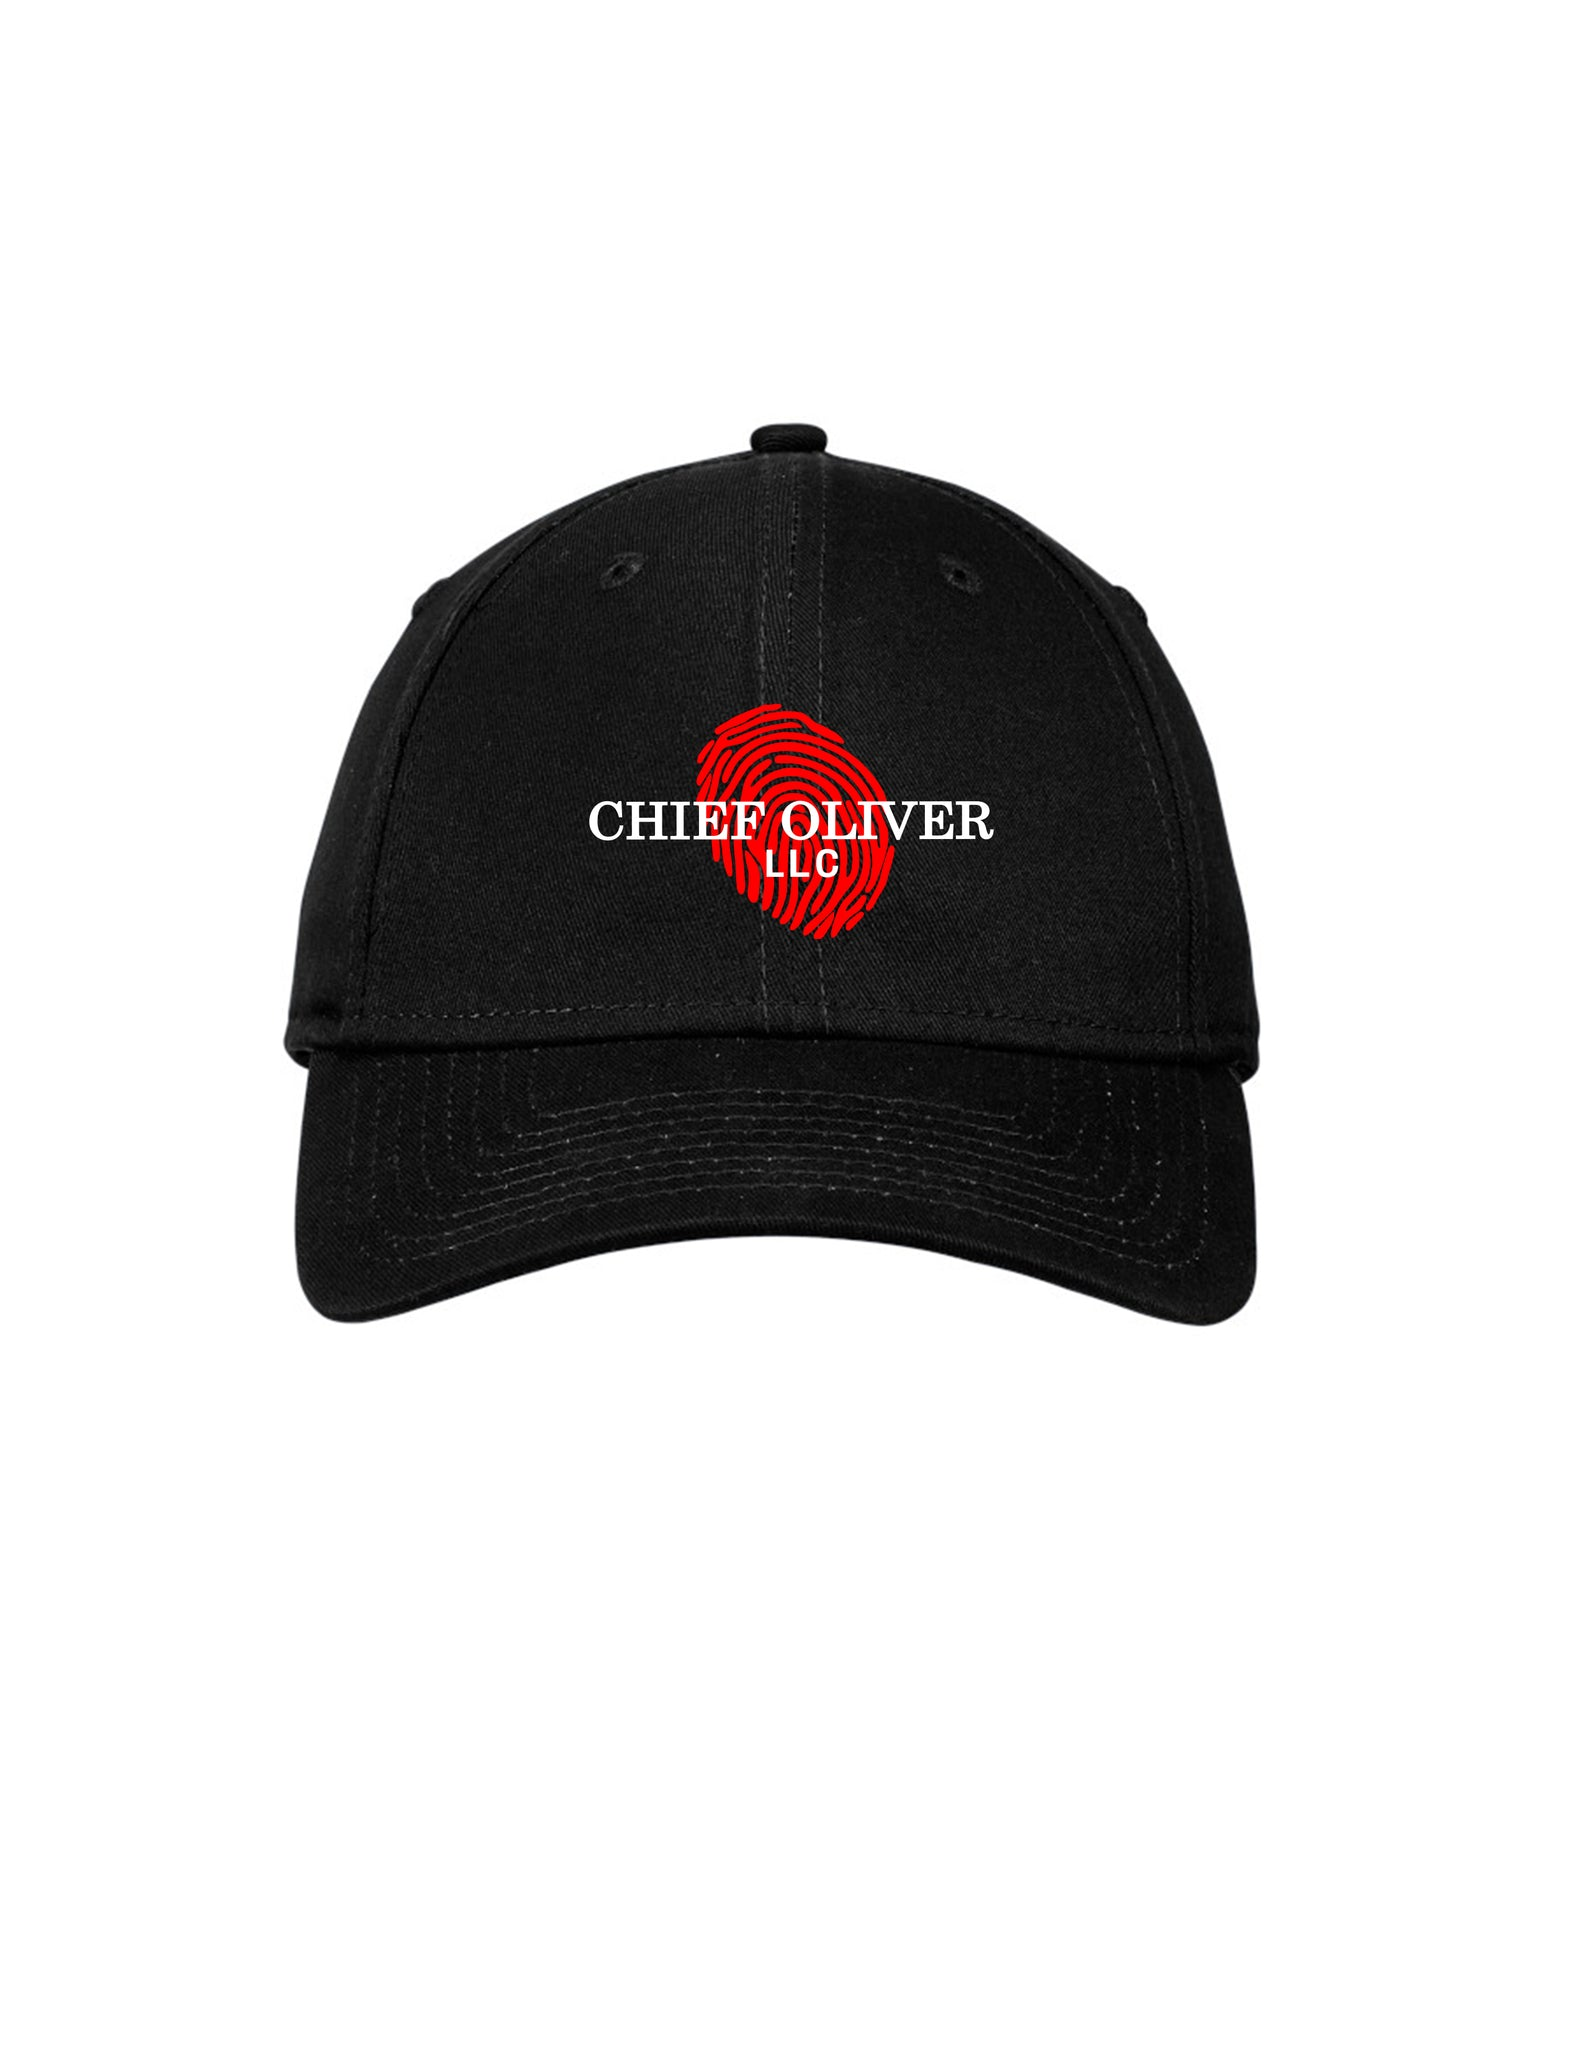 Chief Oliver New Era Adjustable Hat